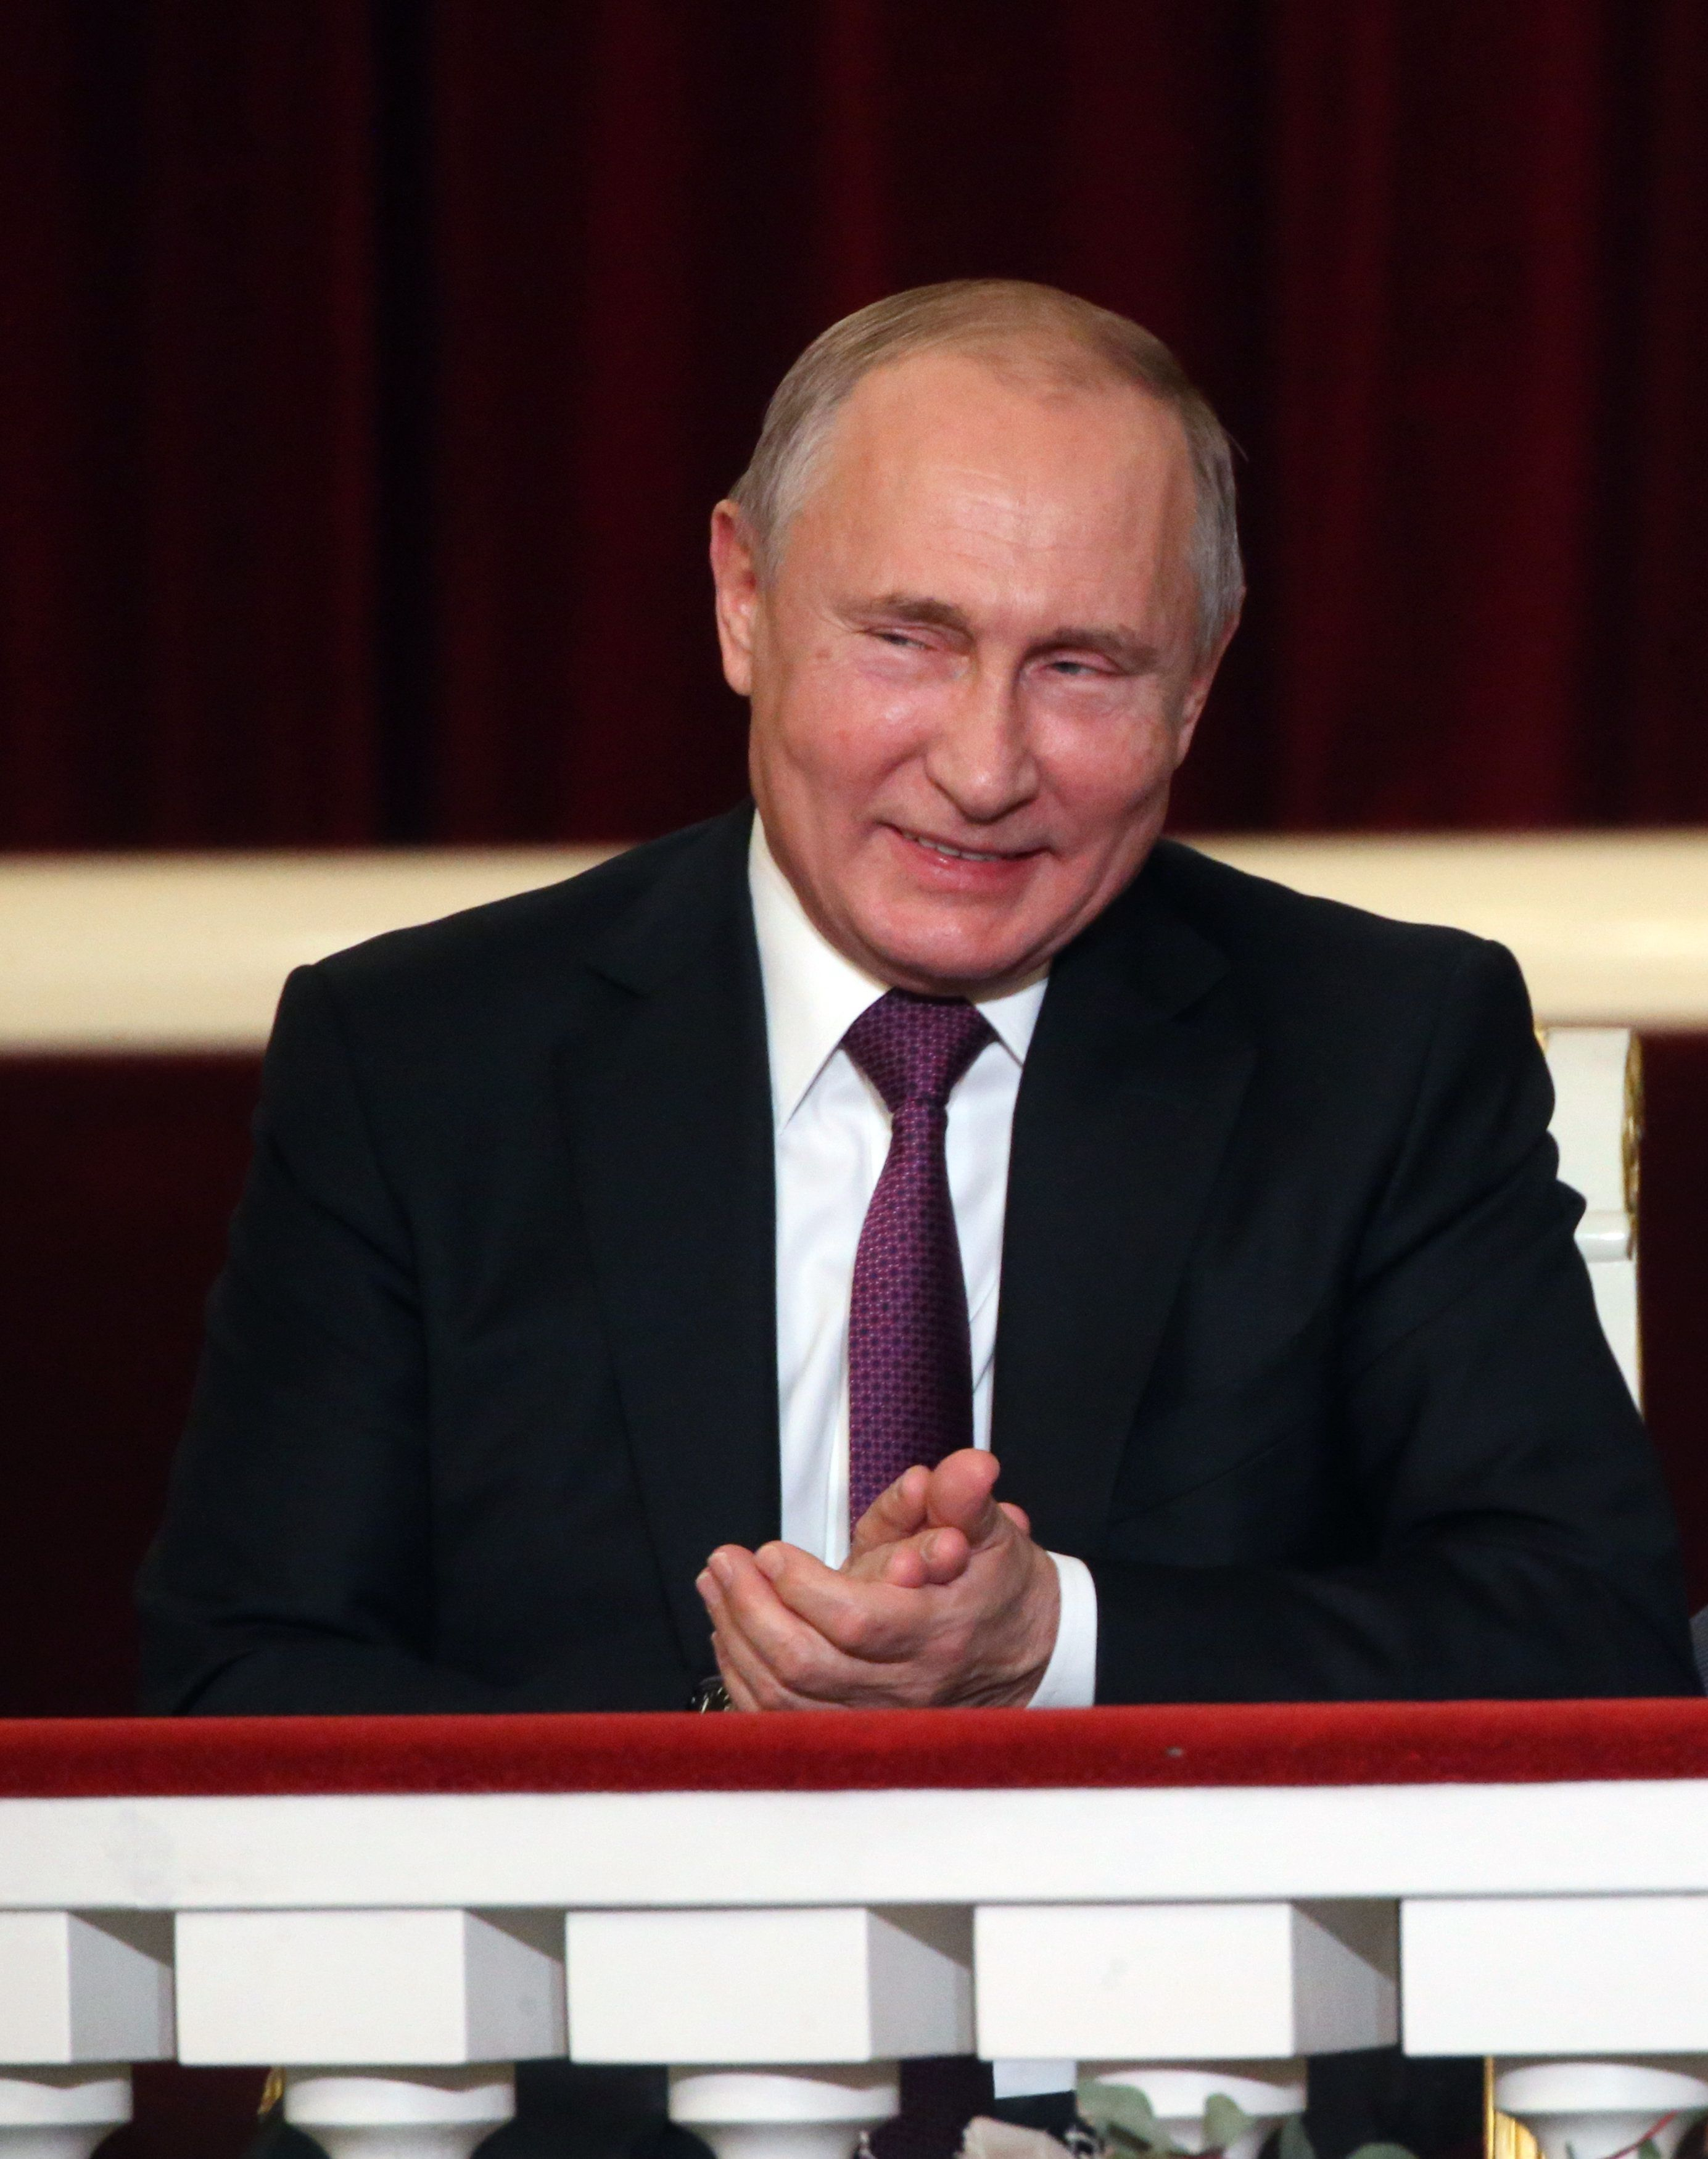 SAINT PETERSBURG, RUSSIA - DECEMBER, 15 (RUSSIA OUT) Russian President Vladimir Putin attends a concert marking the 80th anniversary of  Soviet and Russian conductor Yuri Temirkanov at Saint Petersburg Conservatory in Saint Petersburg, Russia, December, 15, 2018. (Photo by Mikhail Svetlov/Getty Images)